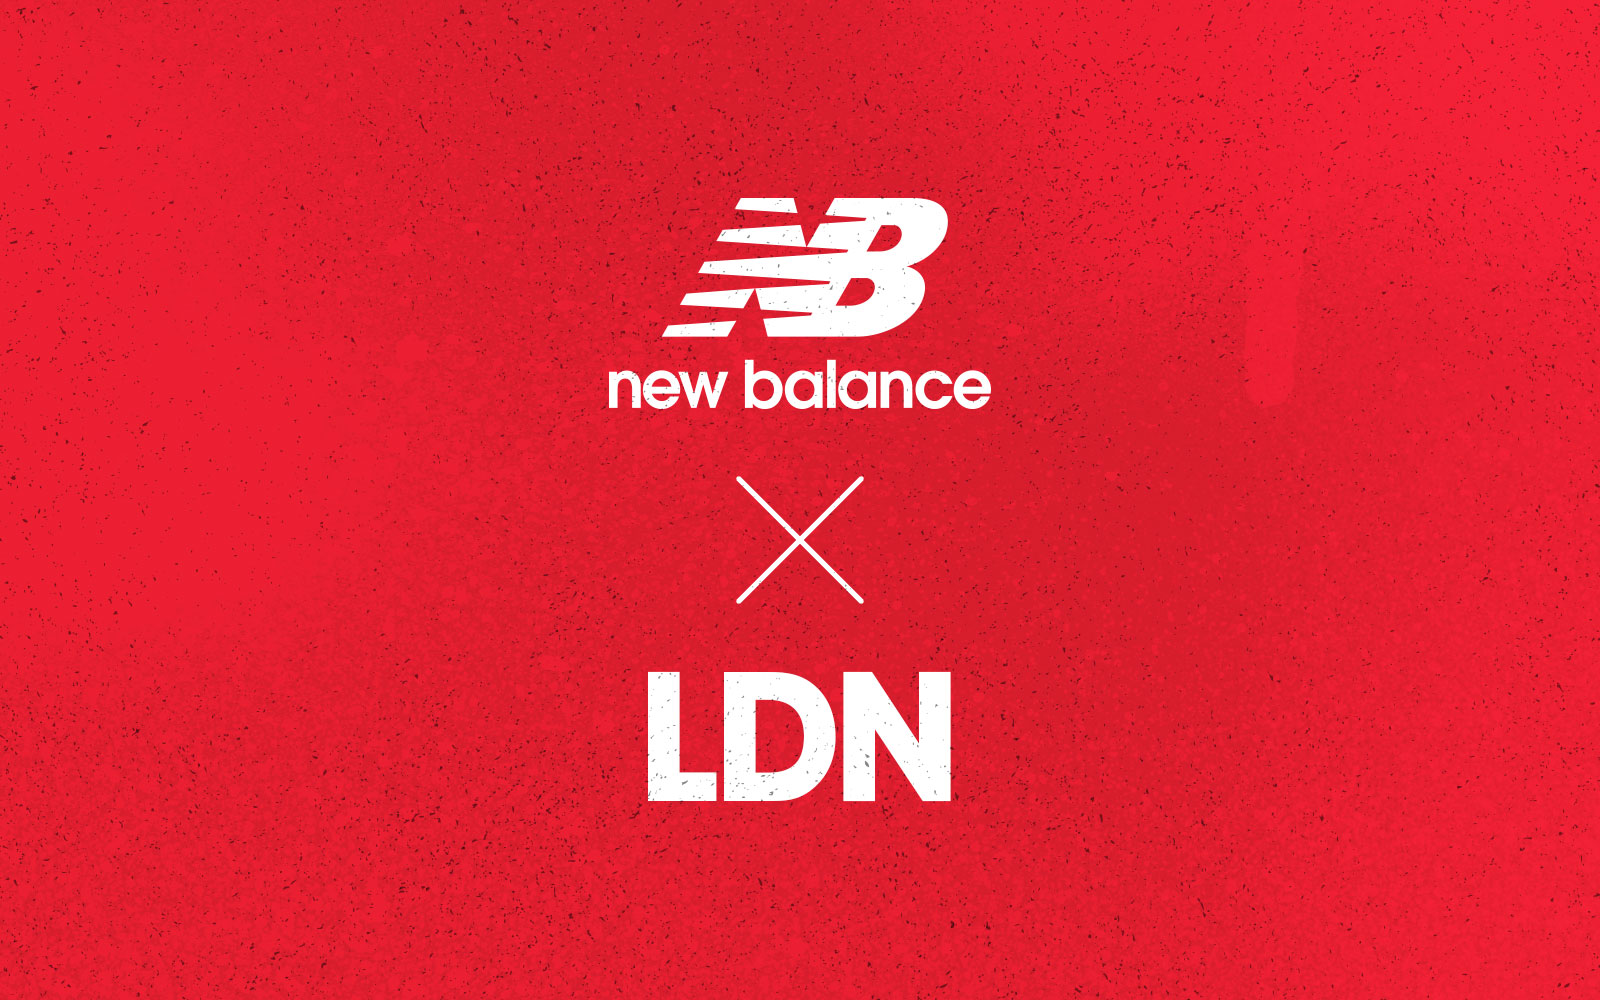 new-balance-london-map-illustration.jpg